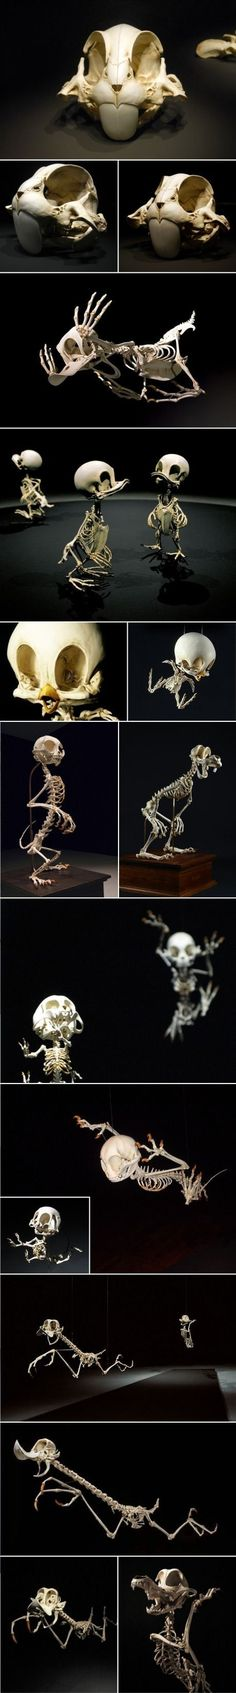 wow.. this is actually kinda fascinating! Disney and Looney Toon character skeletons